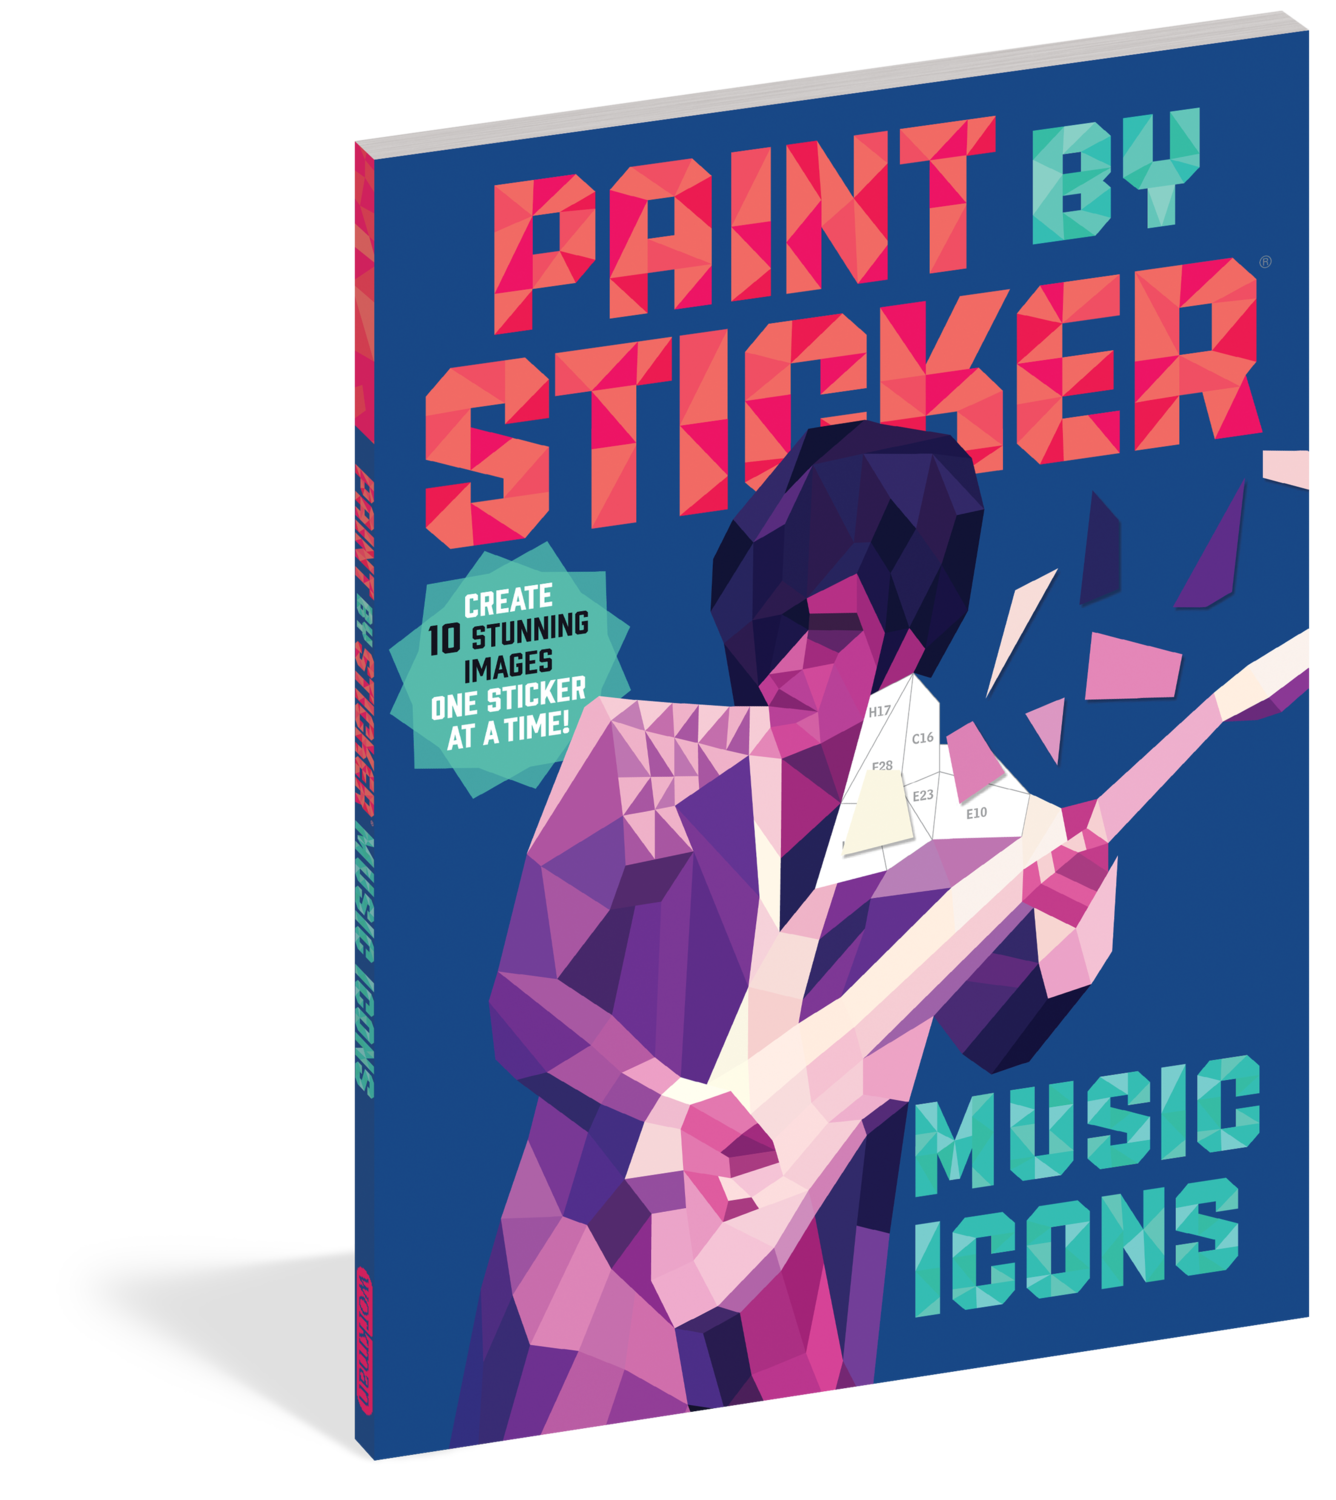 Paint By Stickers Music Icons